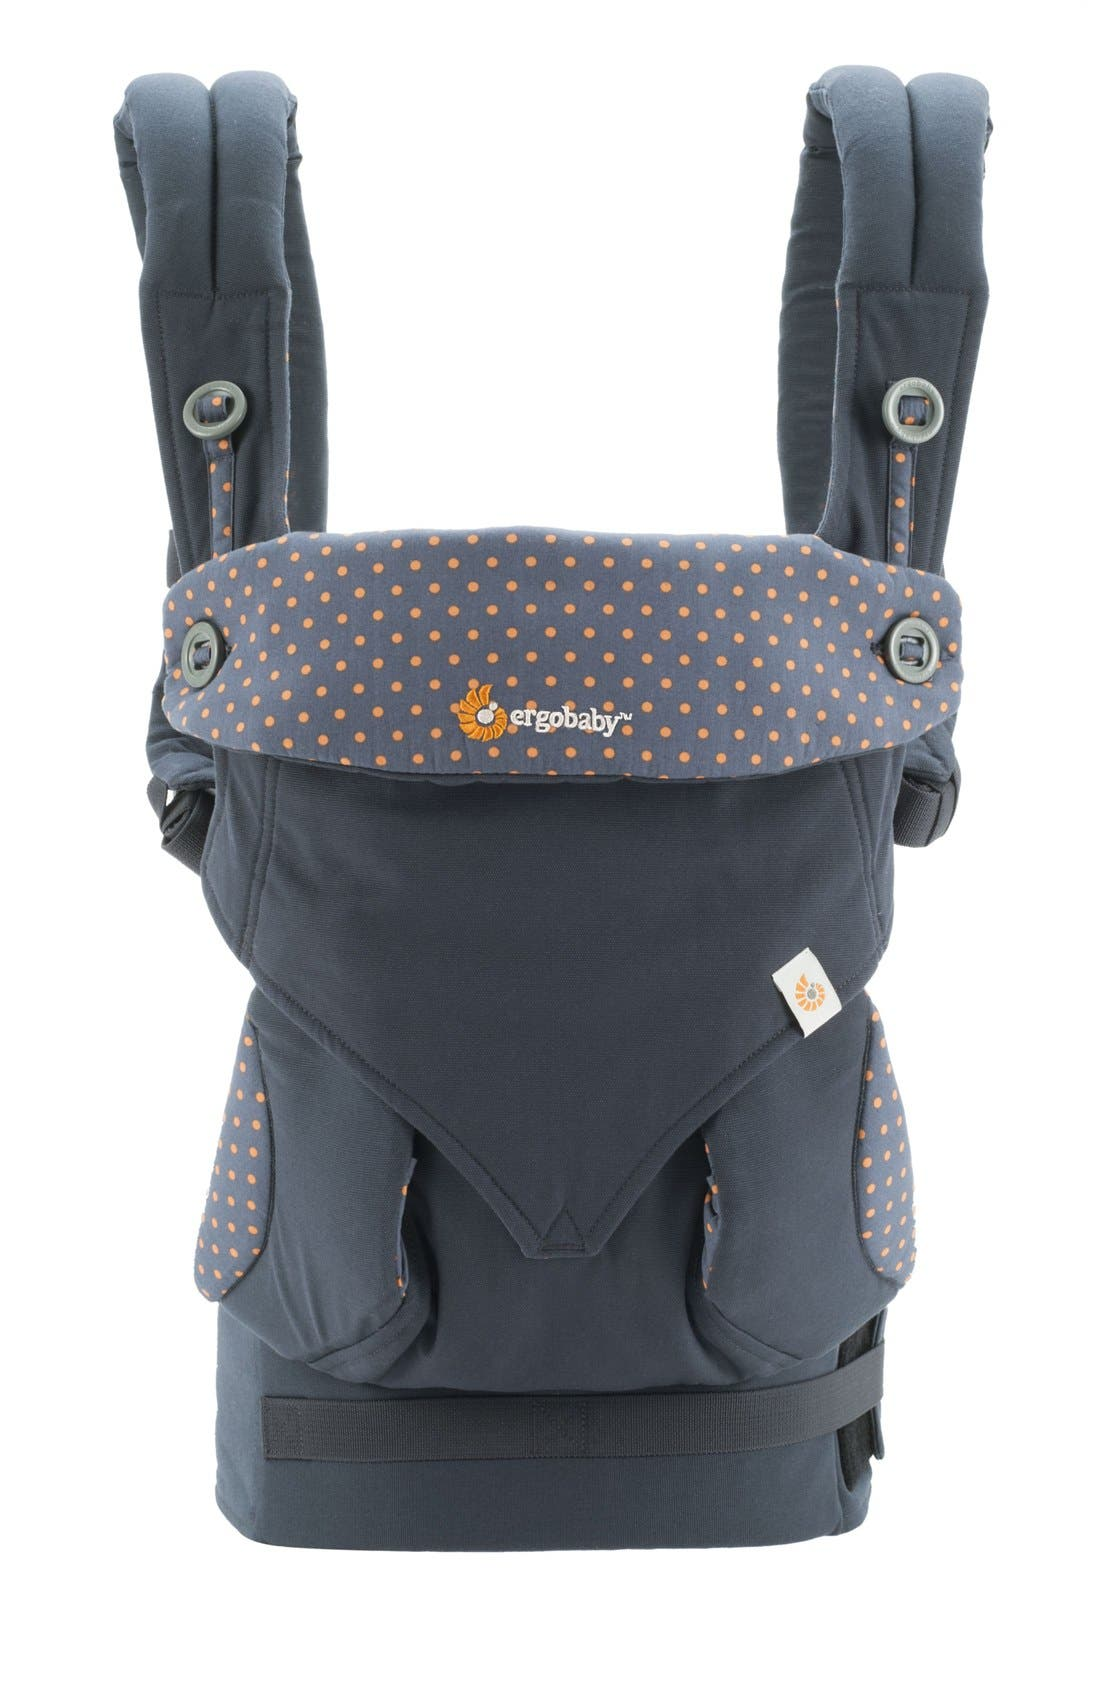 Main Image - ERGObaby '360' Baby Carrier